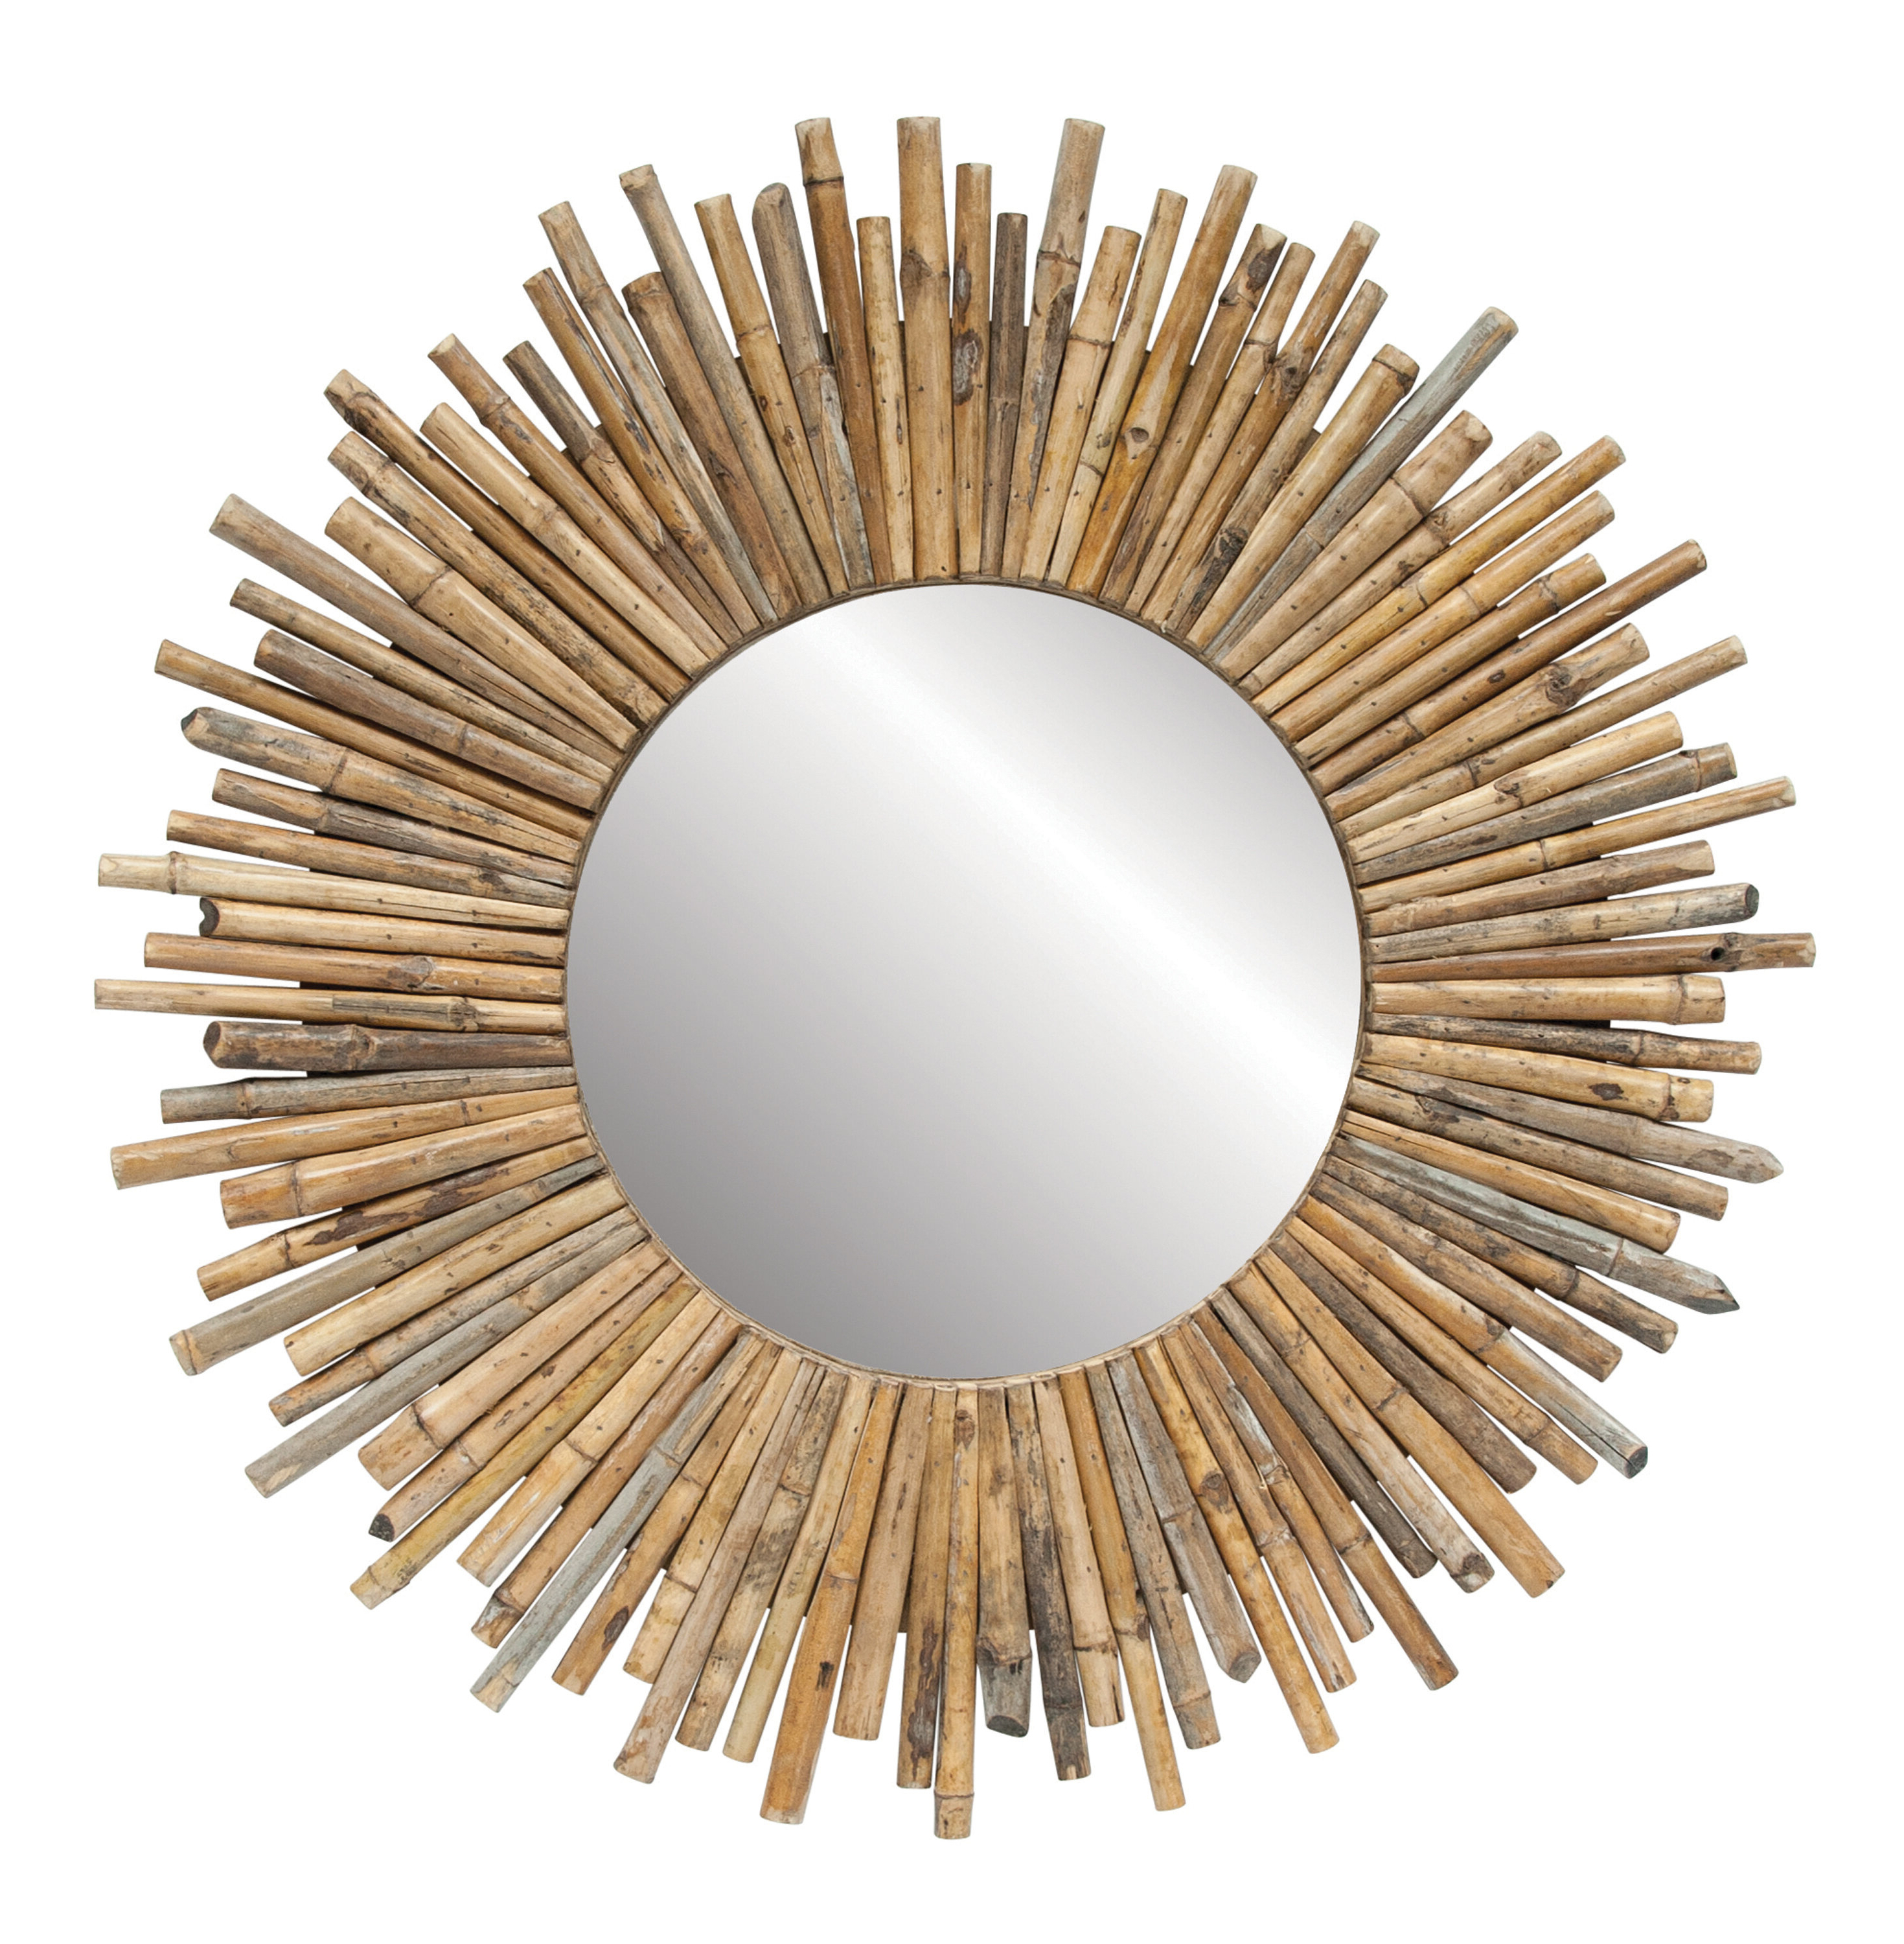 Most Recently Released Madilynn Eclectic Accent Mirror Regarding Josephson Starburst Glam Beveled Accent Wall Mirrors (View 19 of 20)